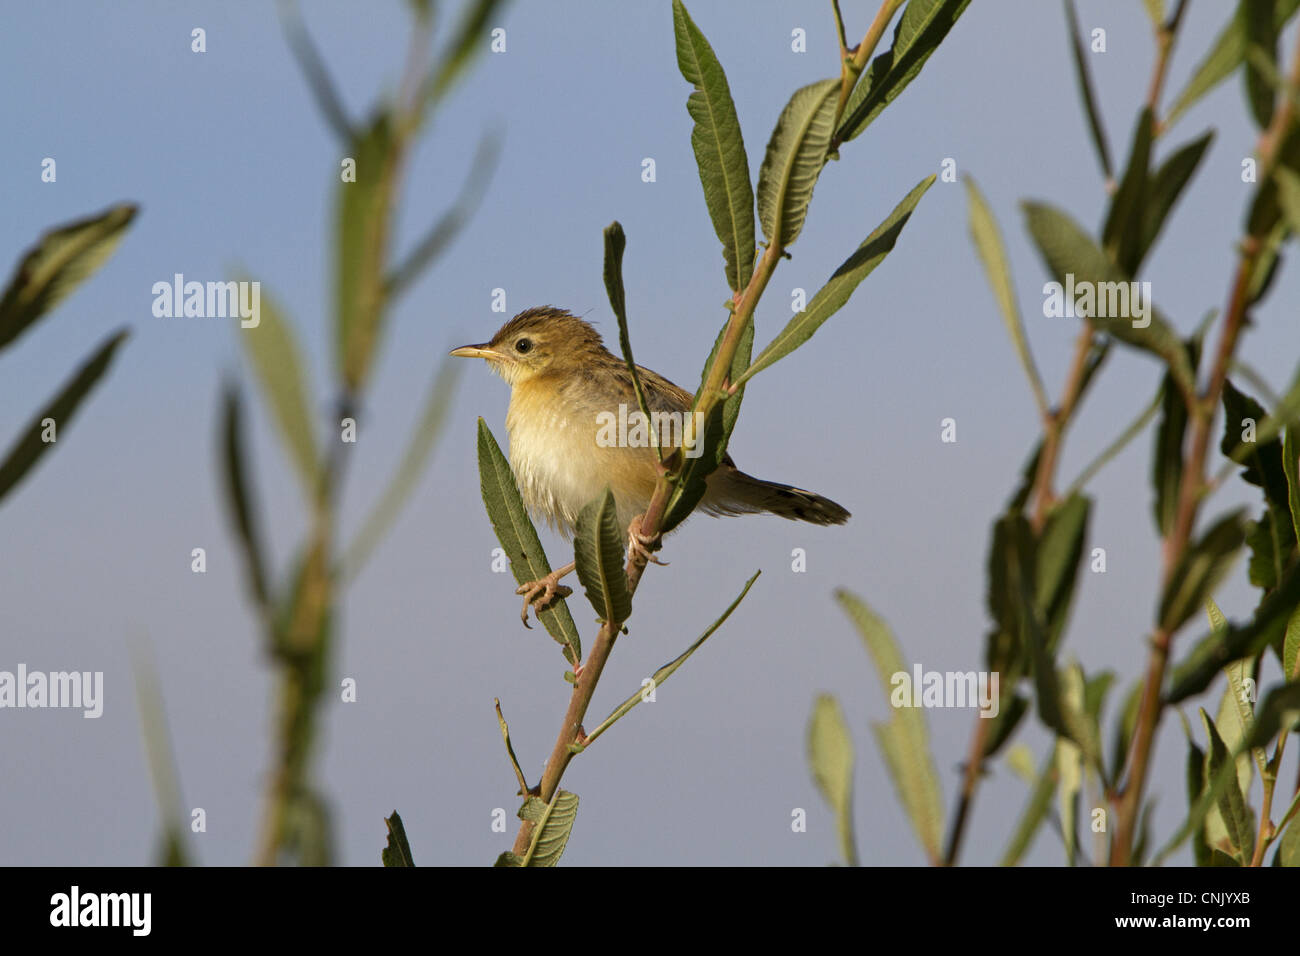 Fan-tailed Warbler (Cisticola juncidis) adult, perched on stem, Extremadura, Spain, september - Stock Image